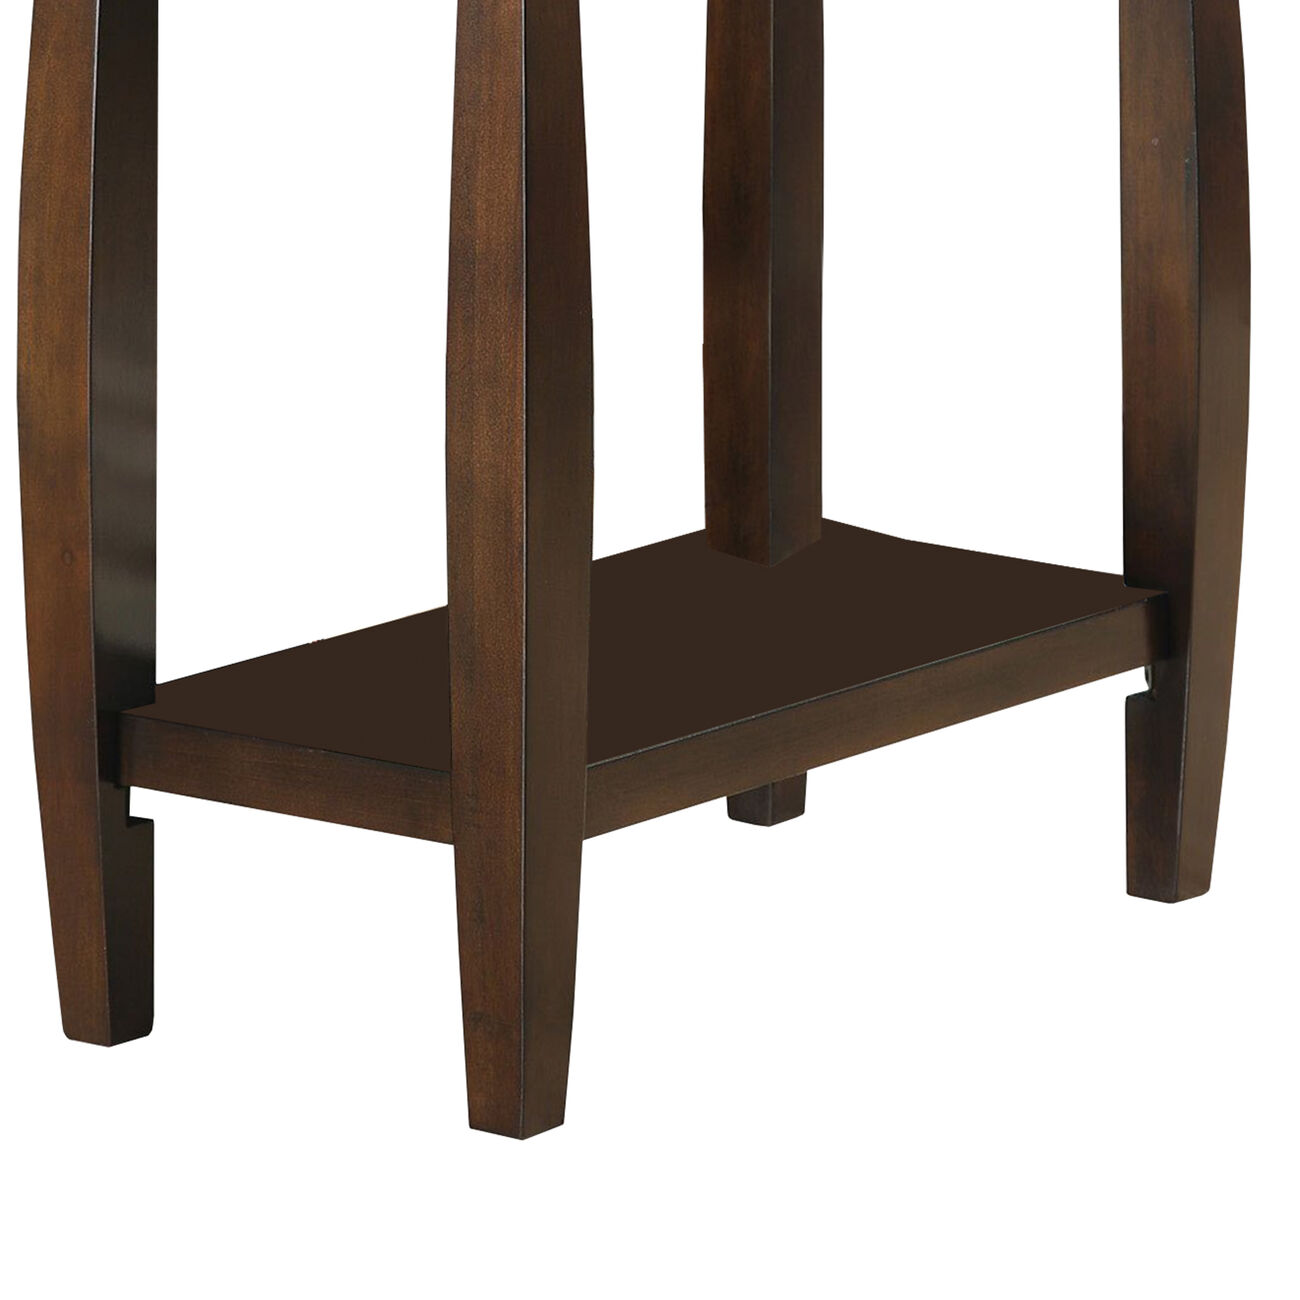 Elegant Wooden Chair Side Table, Brown